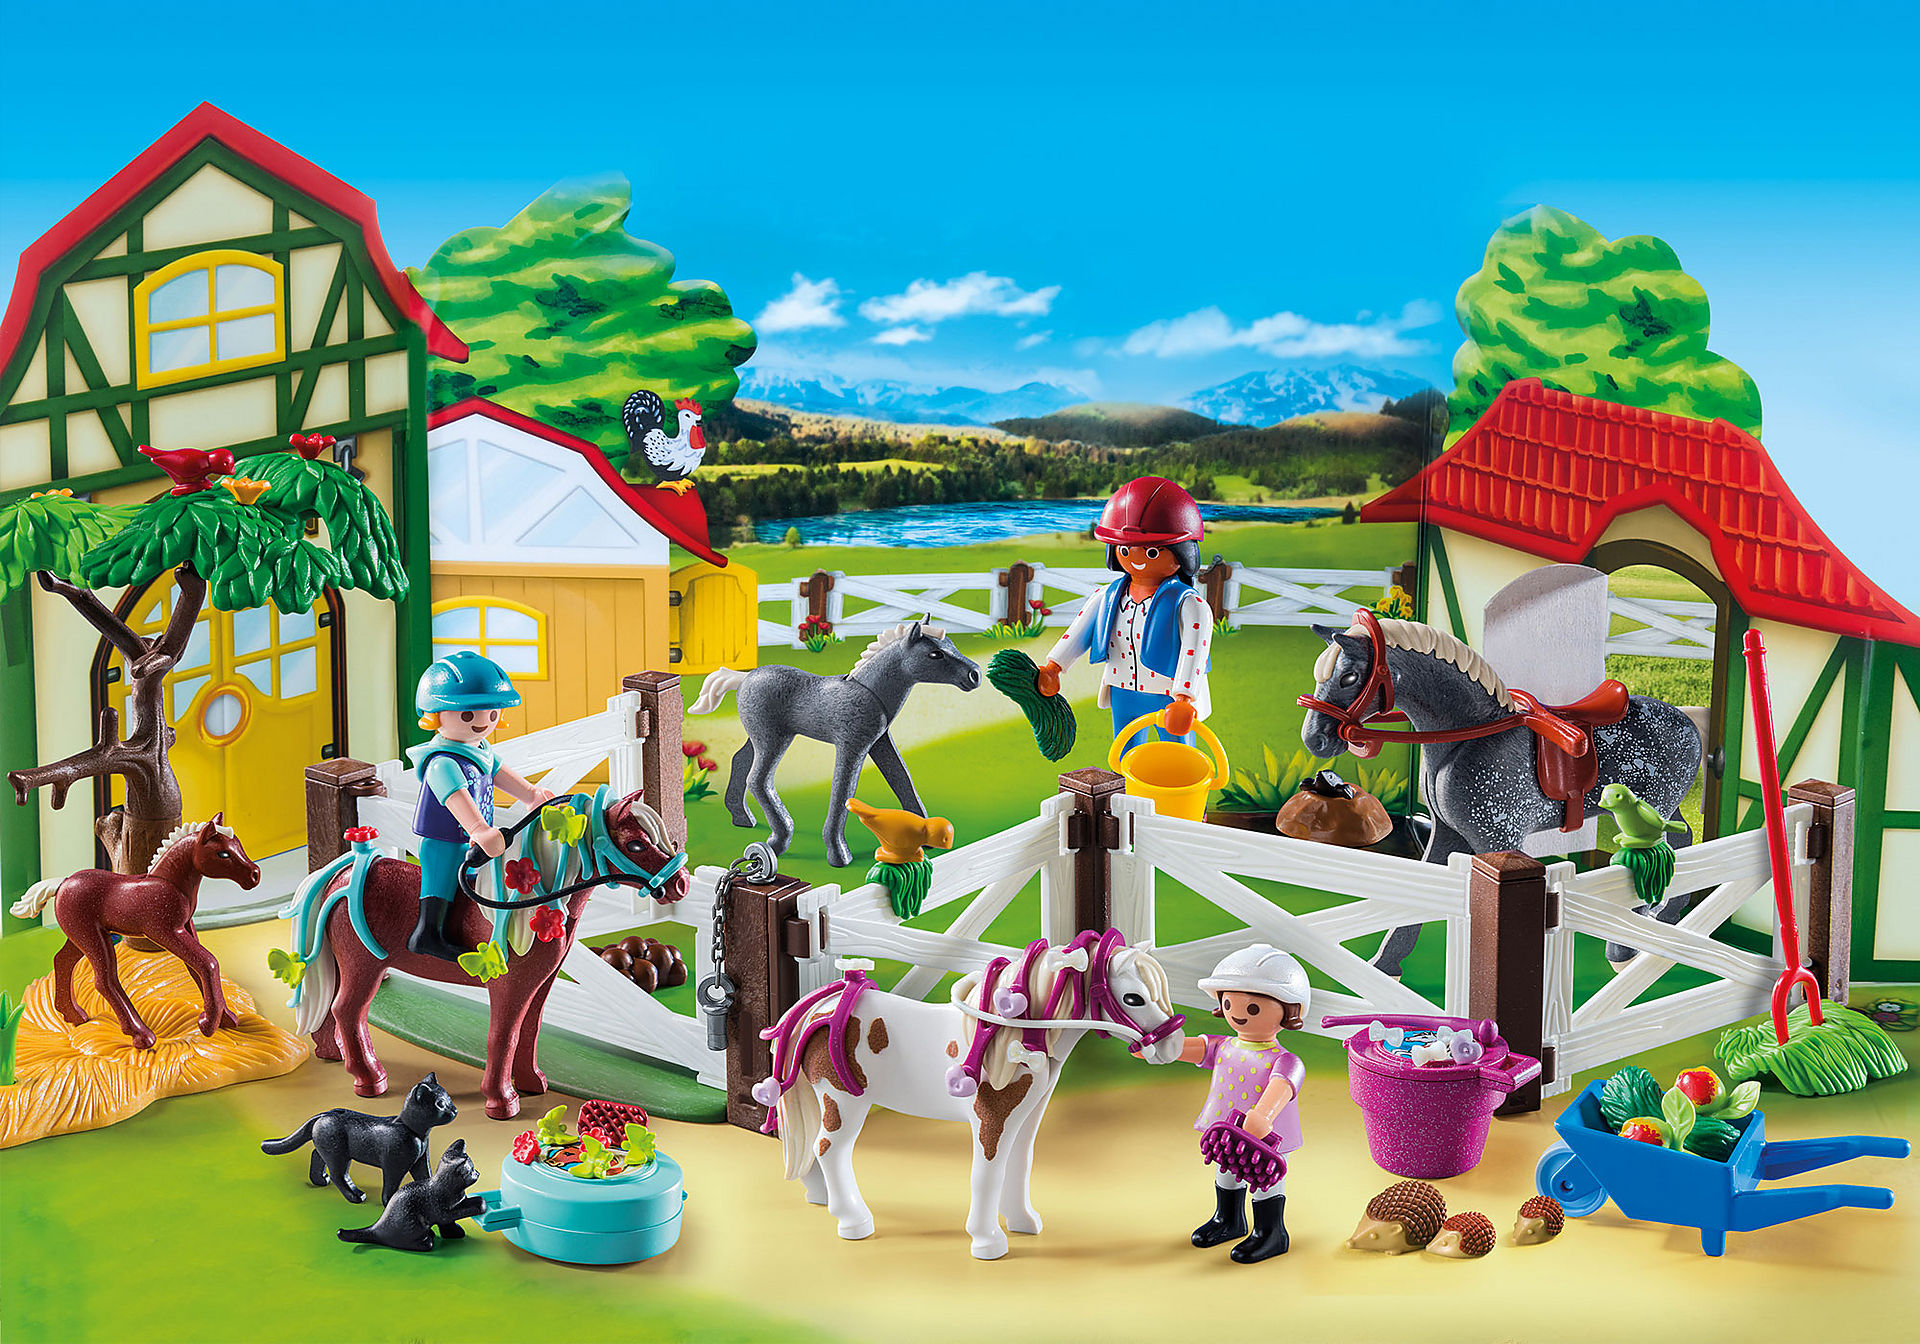 http://media.playmobil.com/i/playmobil/9262_product_extra1/Advent Calendar - Horse Farm